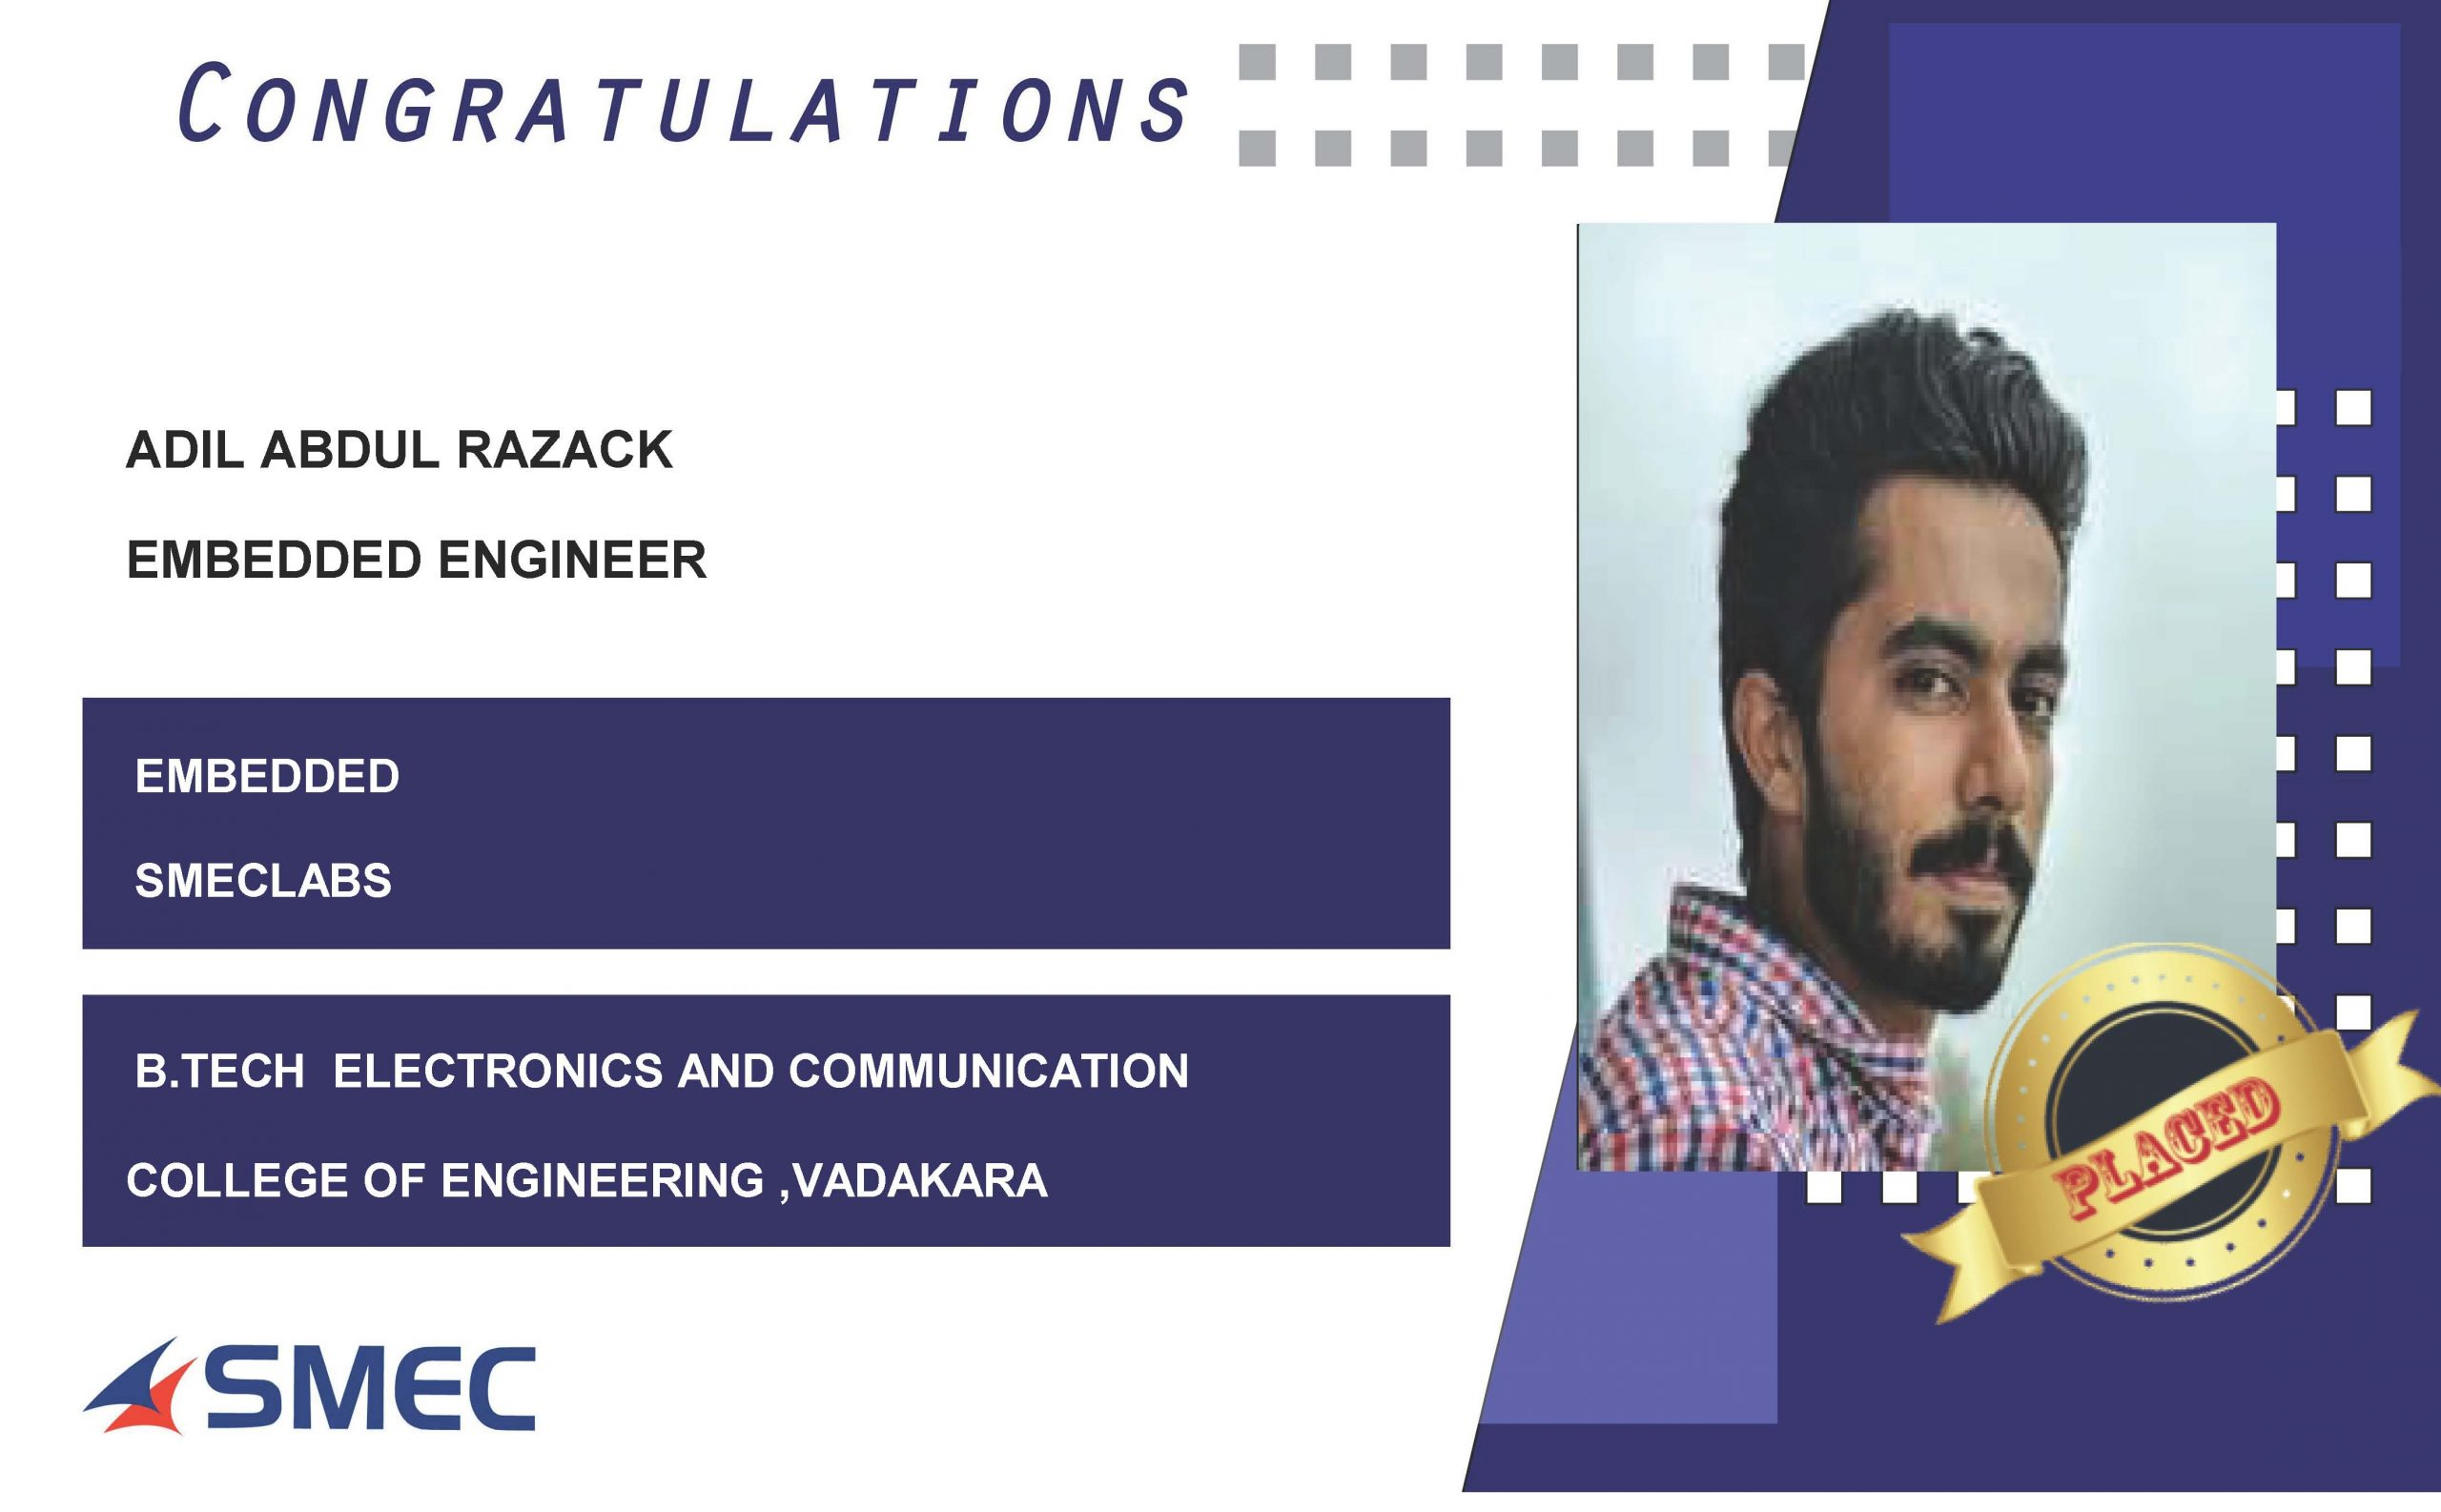 EMBEDDED ENGINEER-ADIL ABDUL